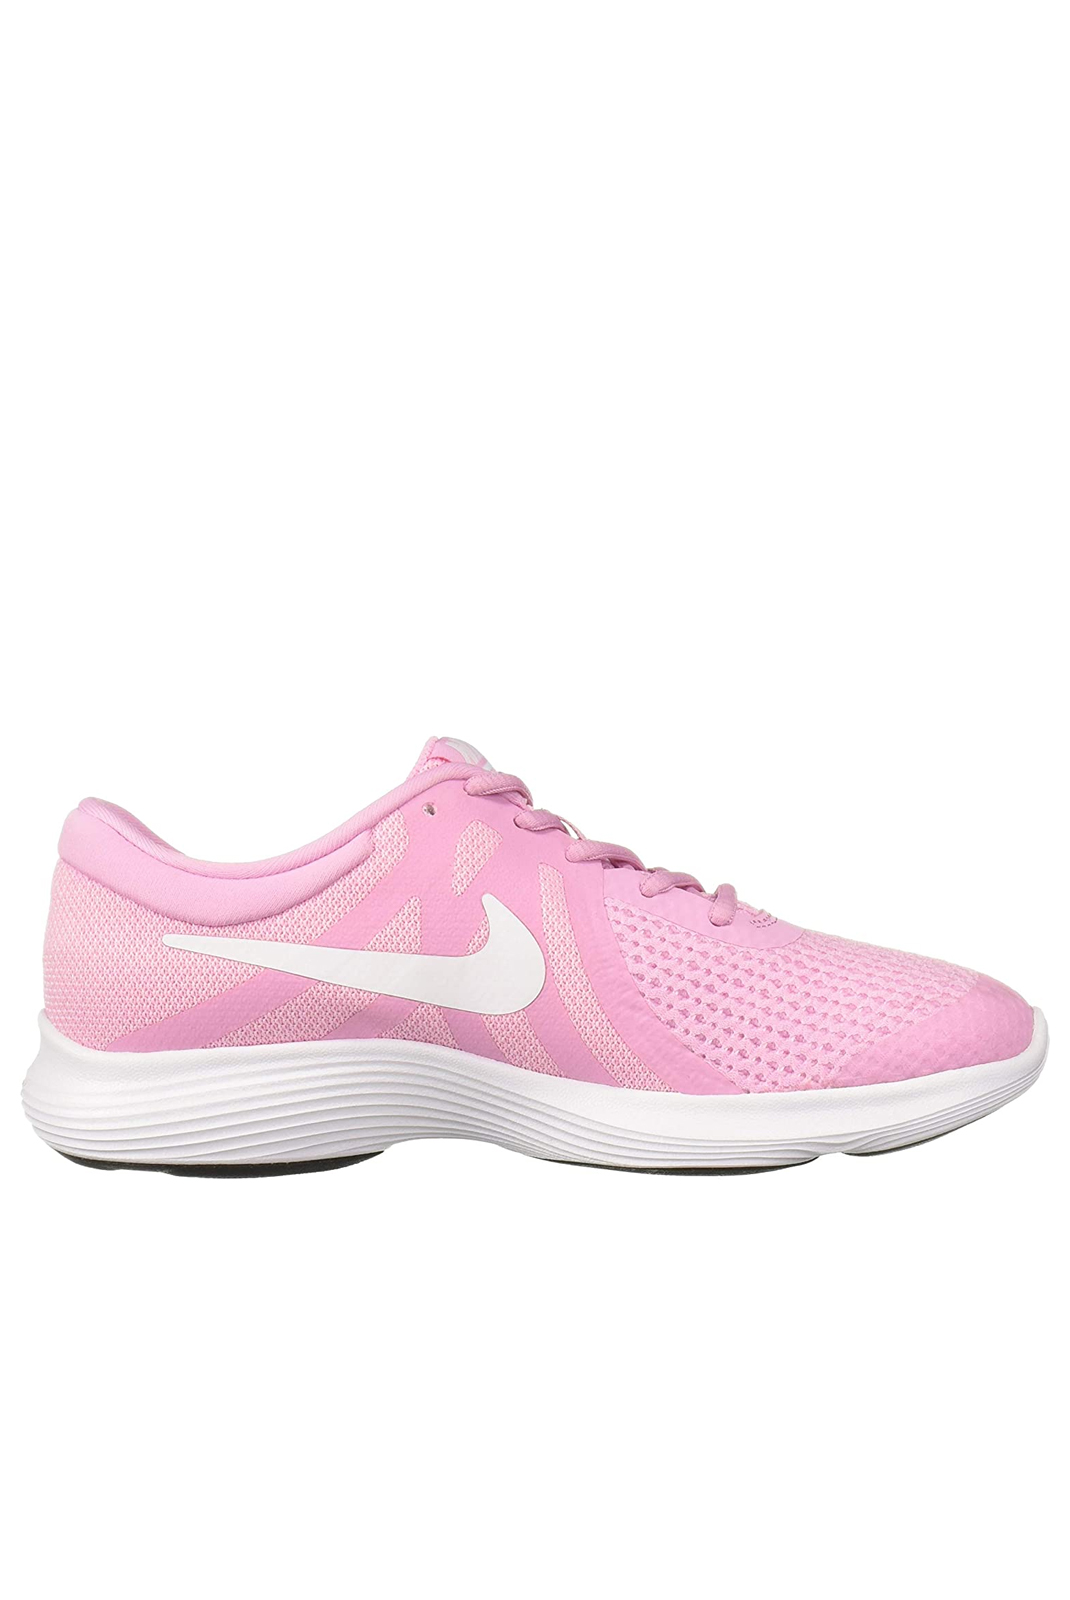 Baskets / Sneakers  Nike 943306603 REVOLUTION 4 GS rose